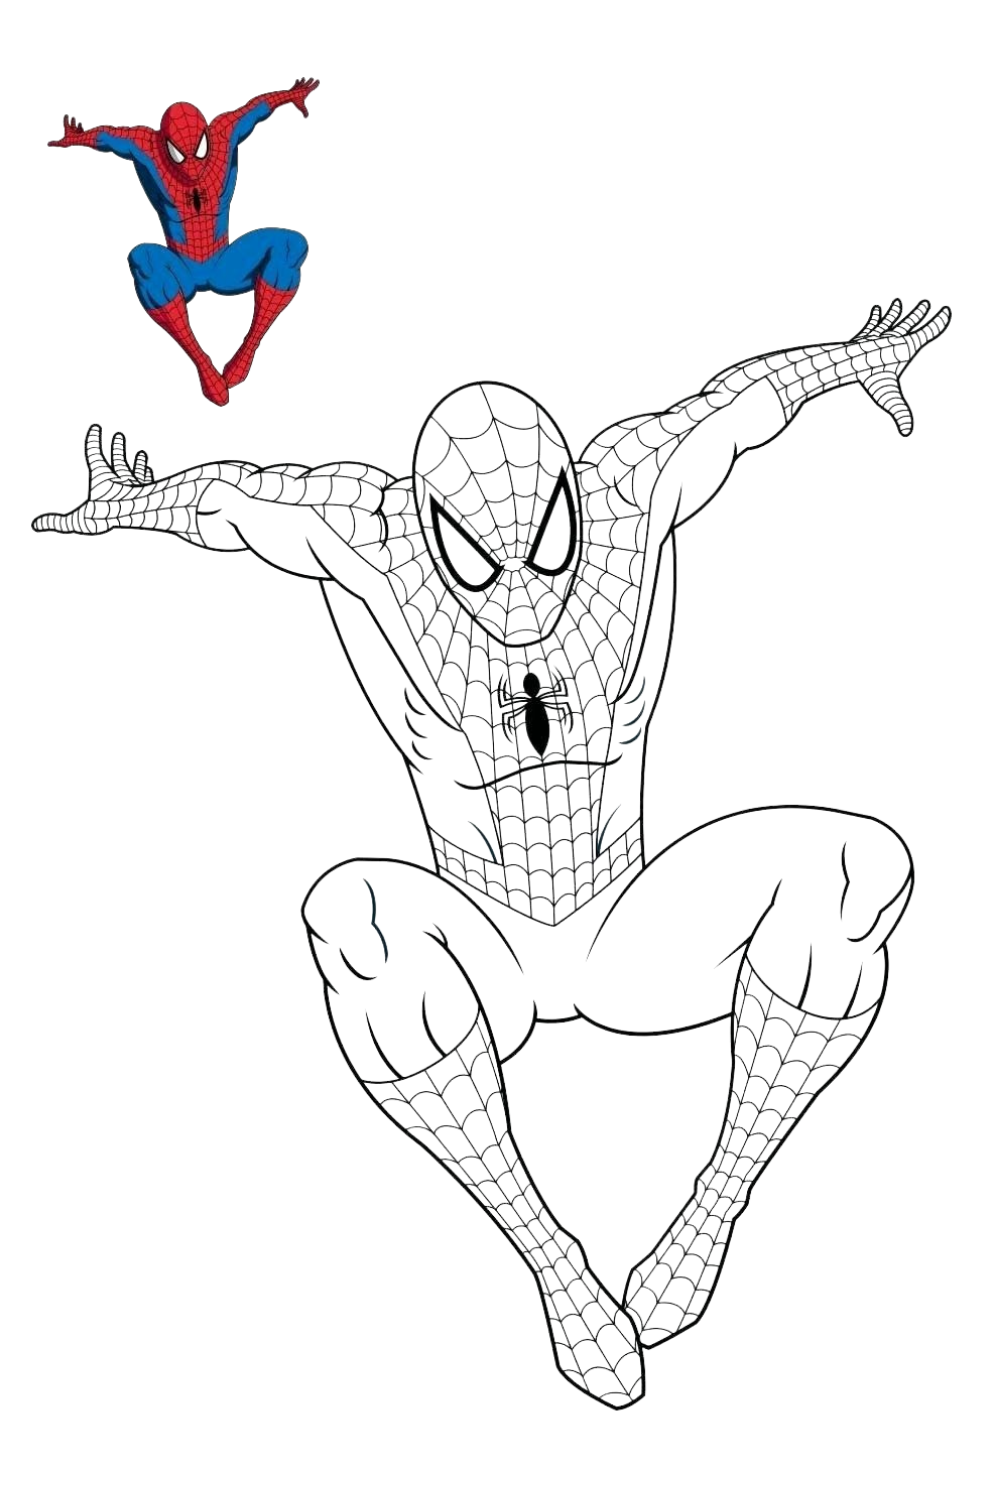 Marvel Spider Man Coloring Book Girls Great Coloring Books For Kids Ages 4 10 And Any Fan Of Spider In 2021 Avengers Coloring Pages Spiderman Coloring Coloring Books